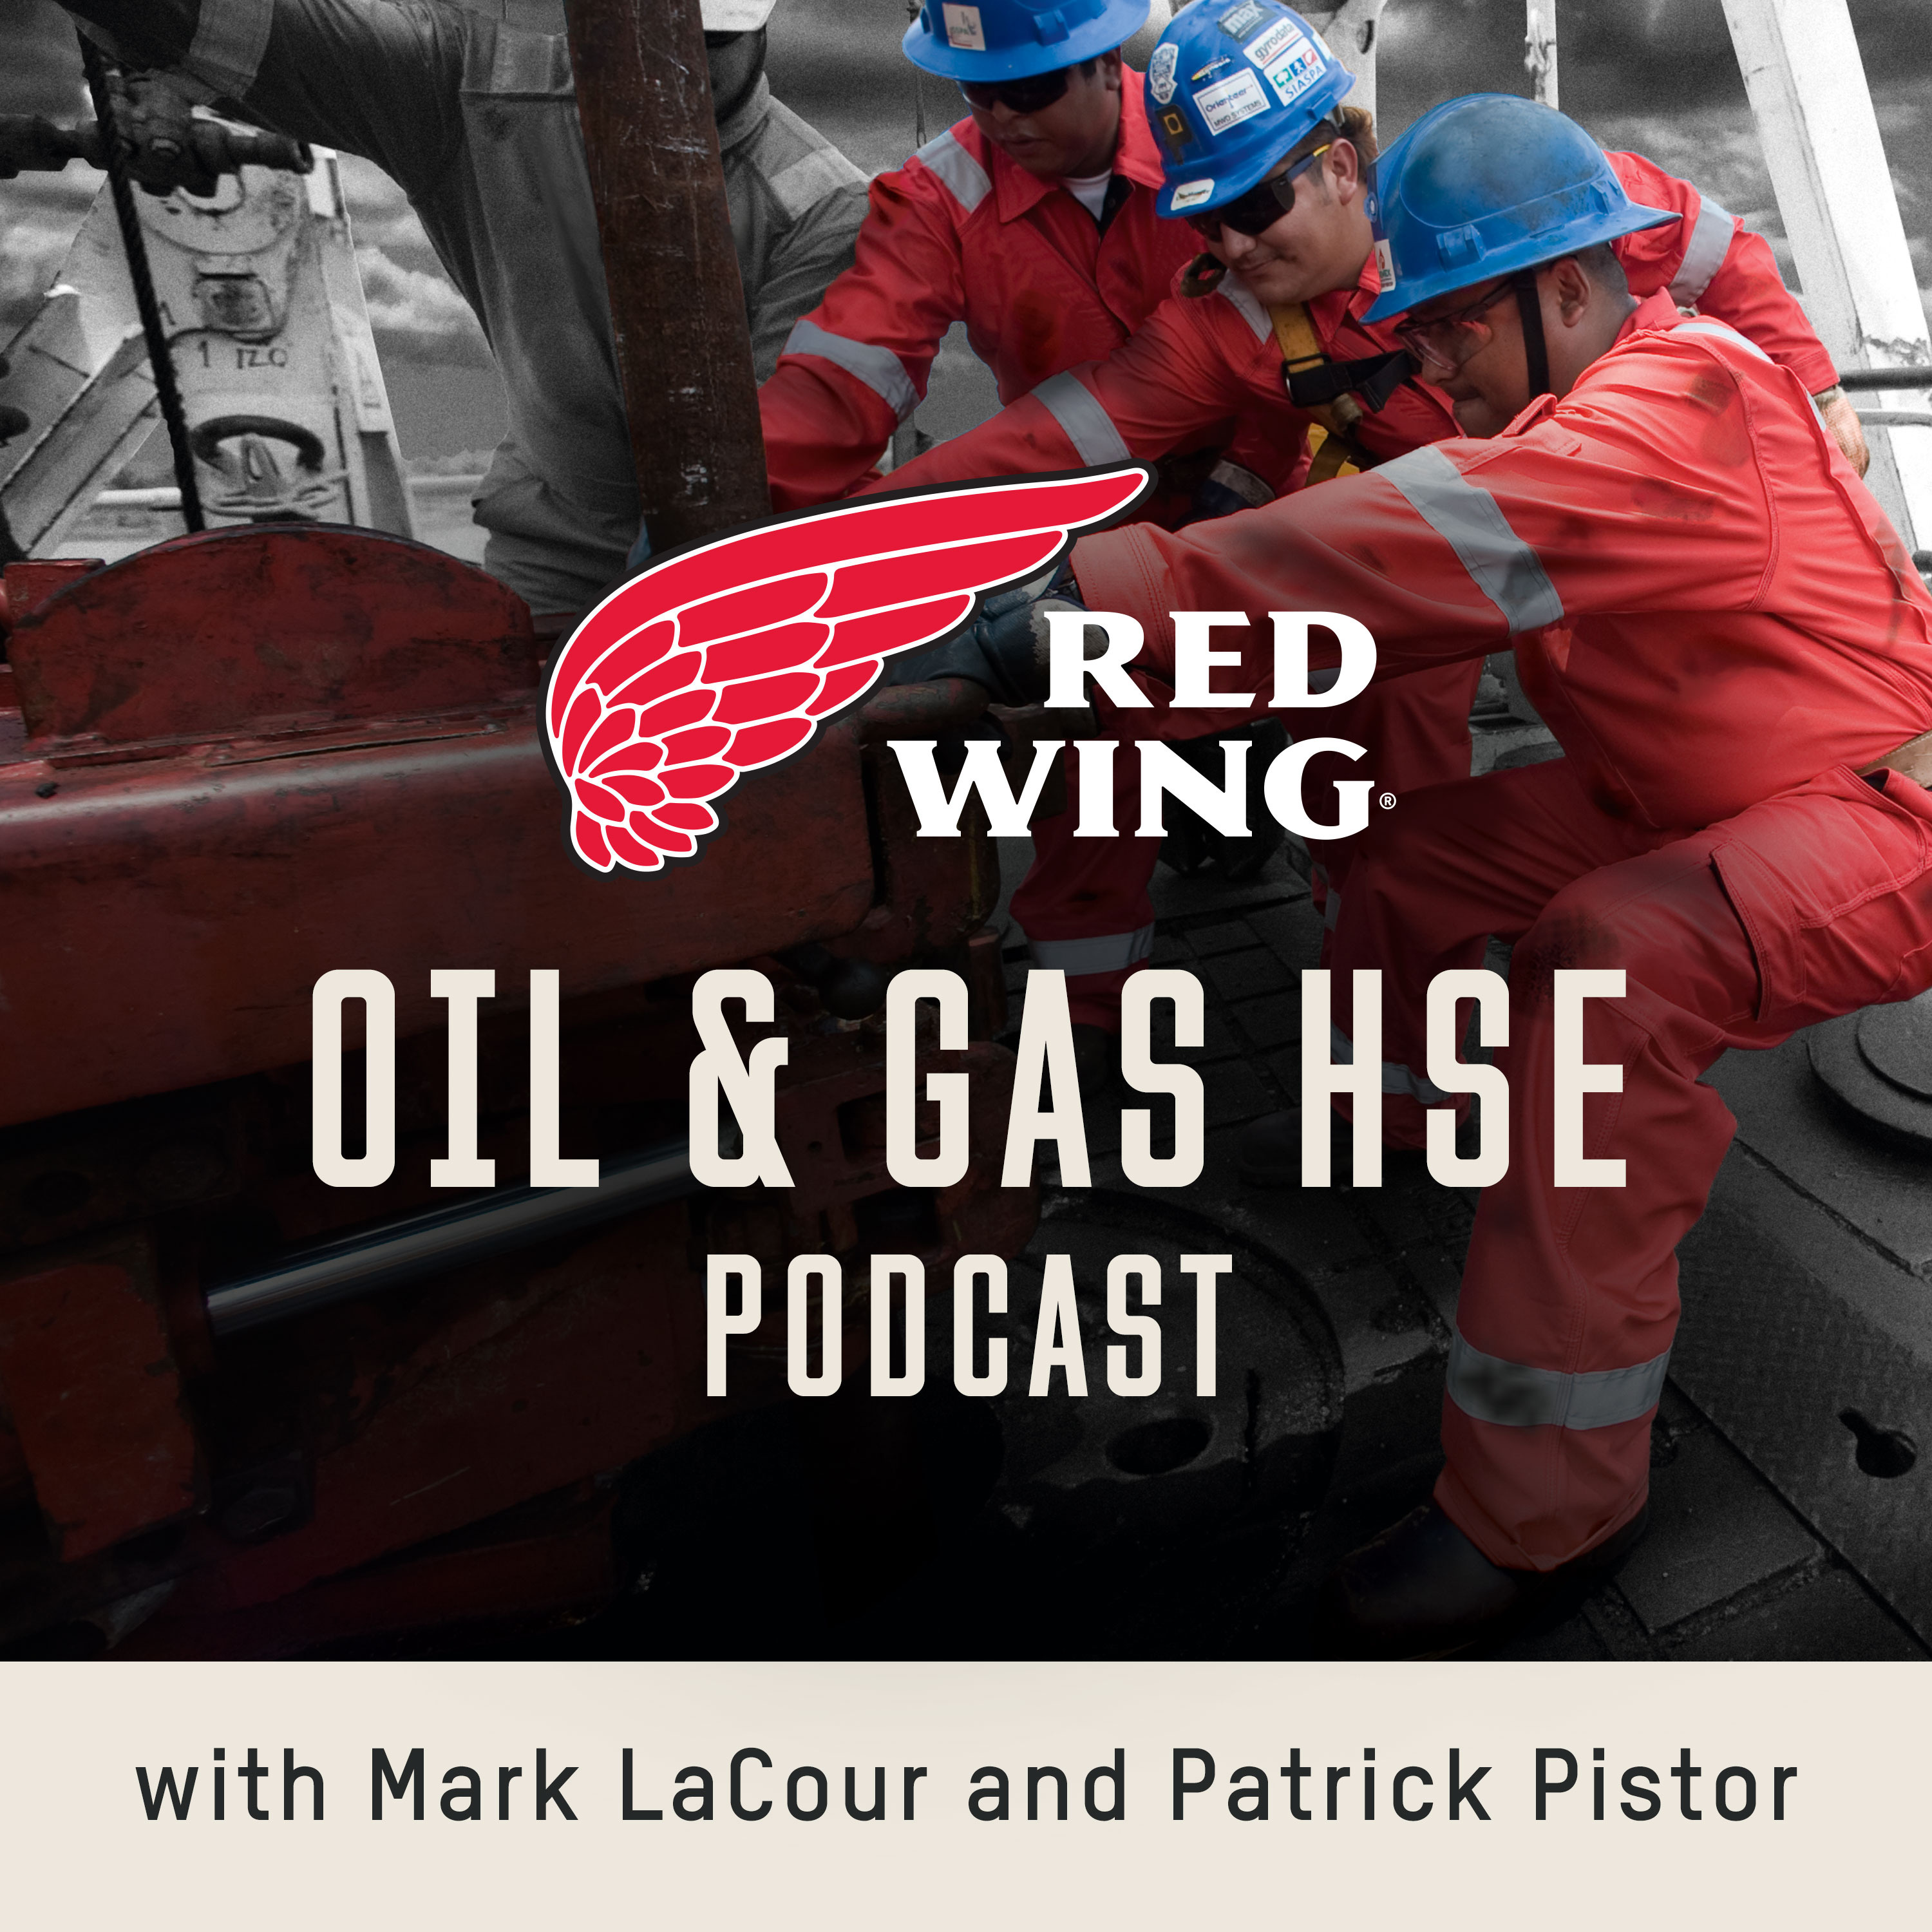 Red Wing Oil & Gas HSE Podcast